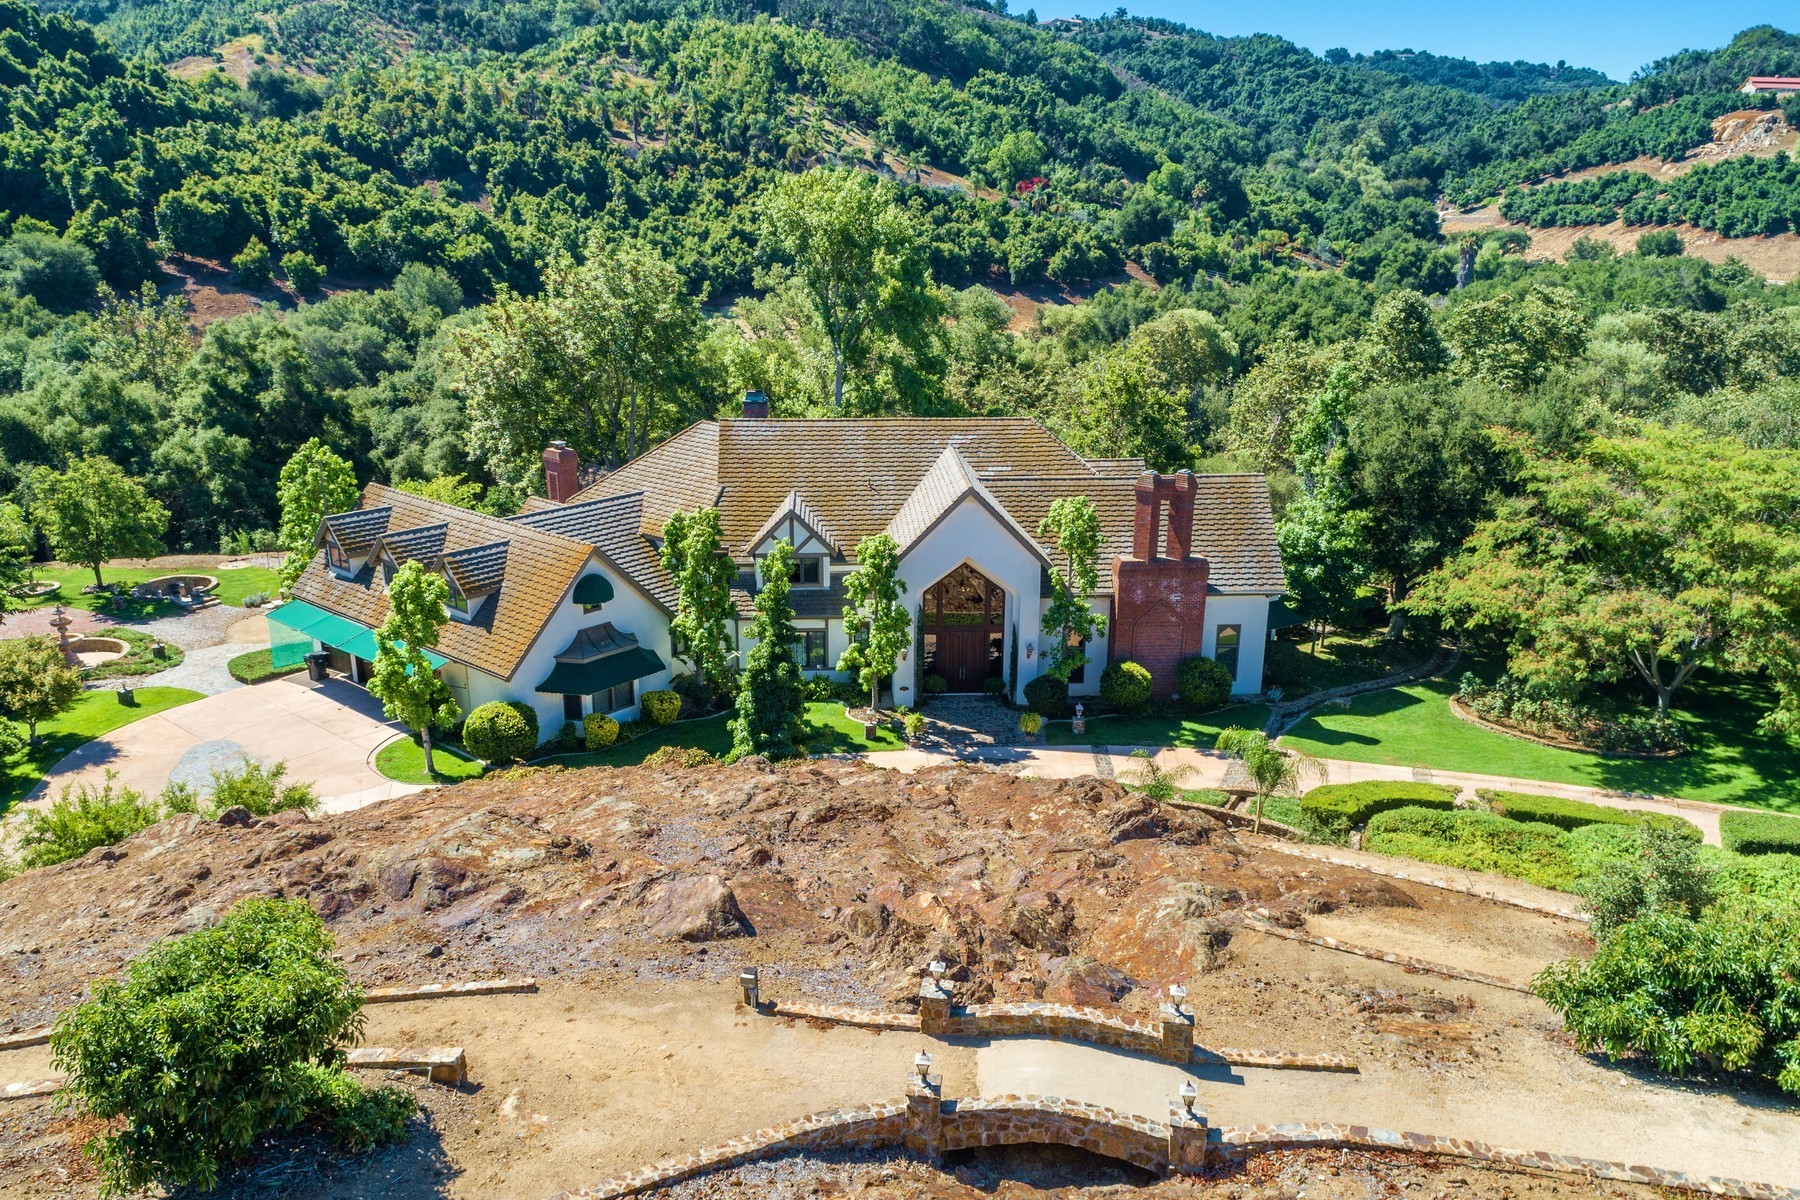 Single Family Homes for Sale at 24892 Ravensview Ct Temecula, California 92592 United States